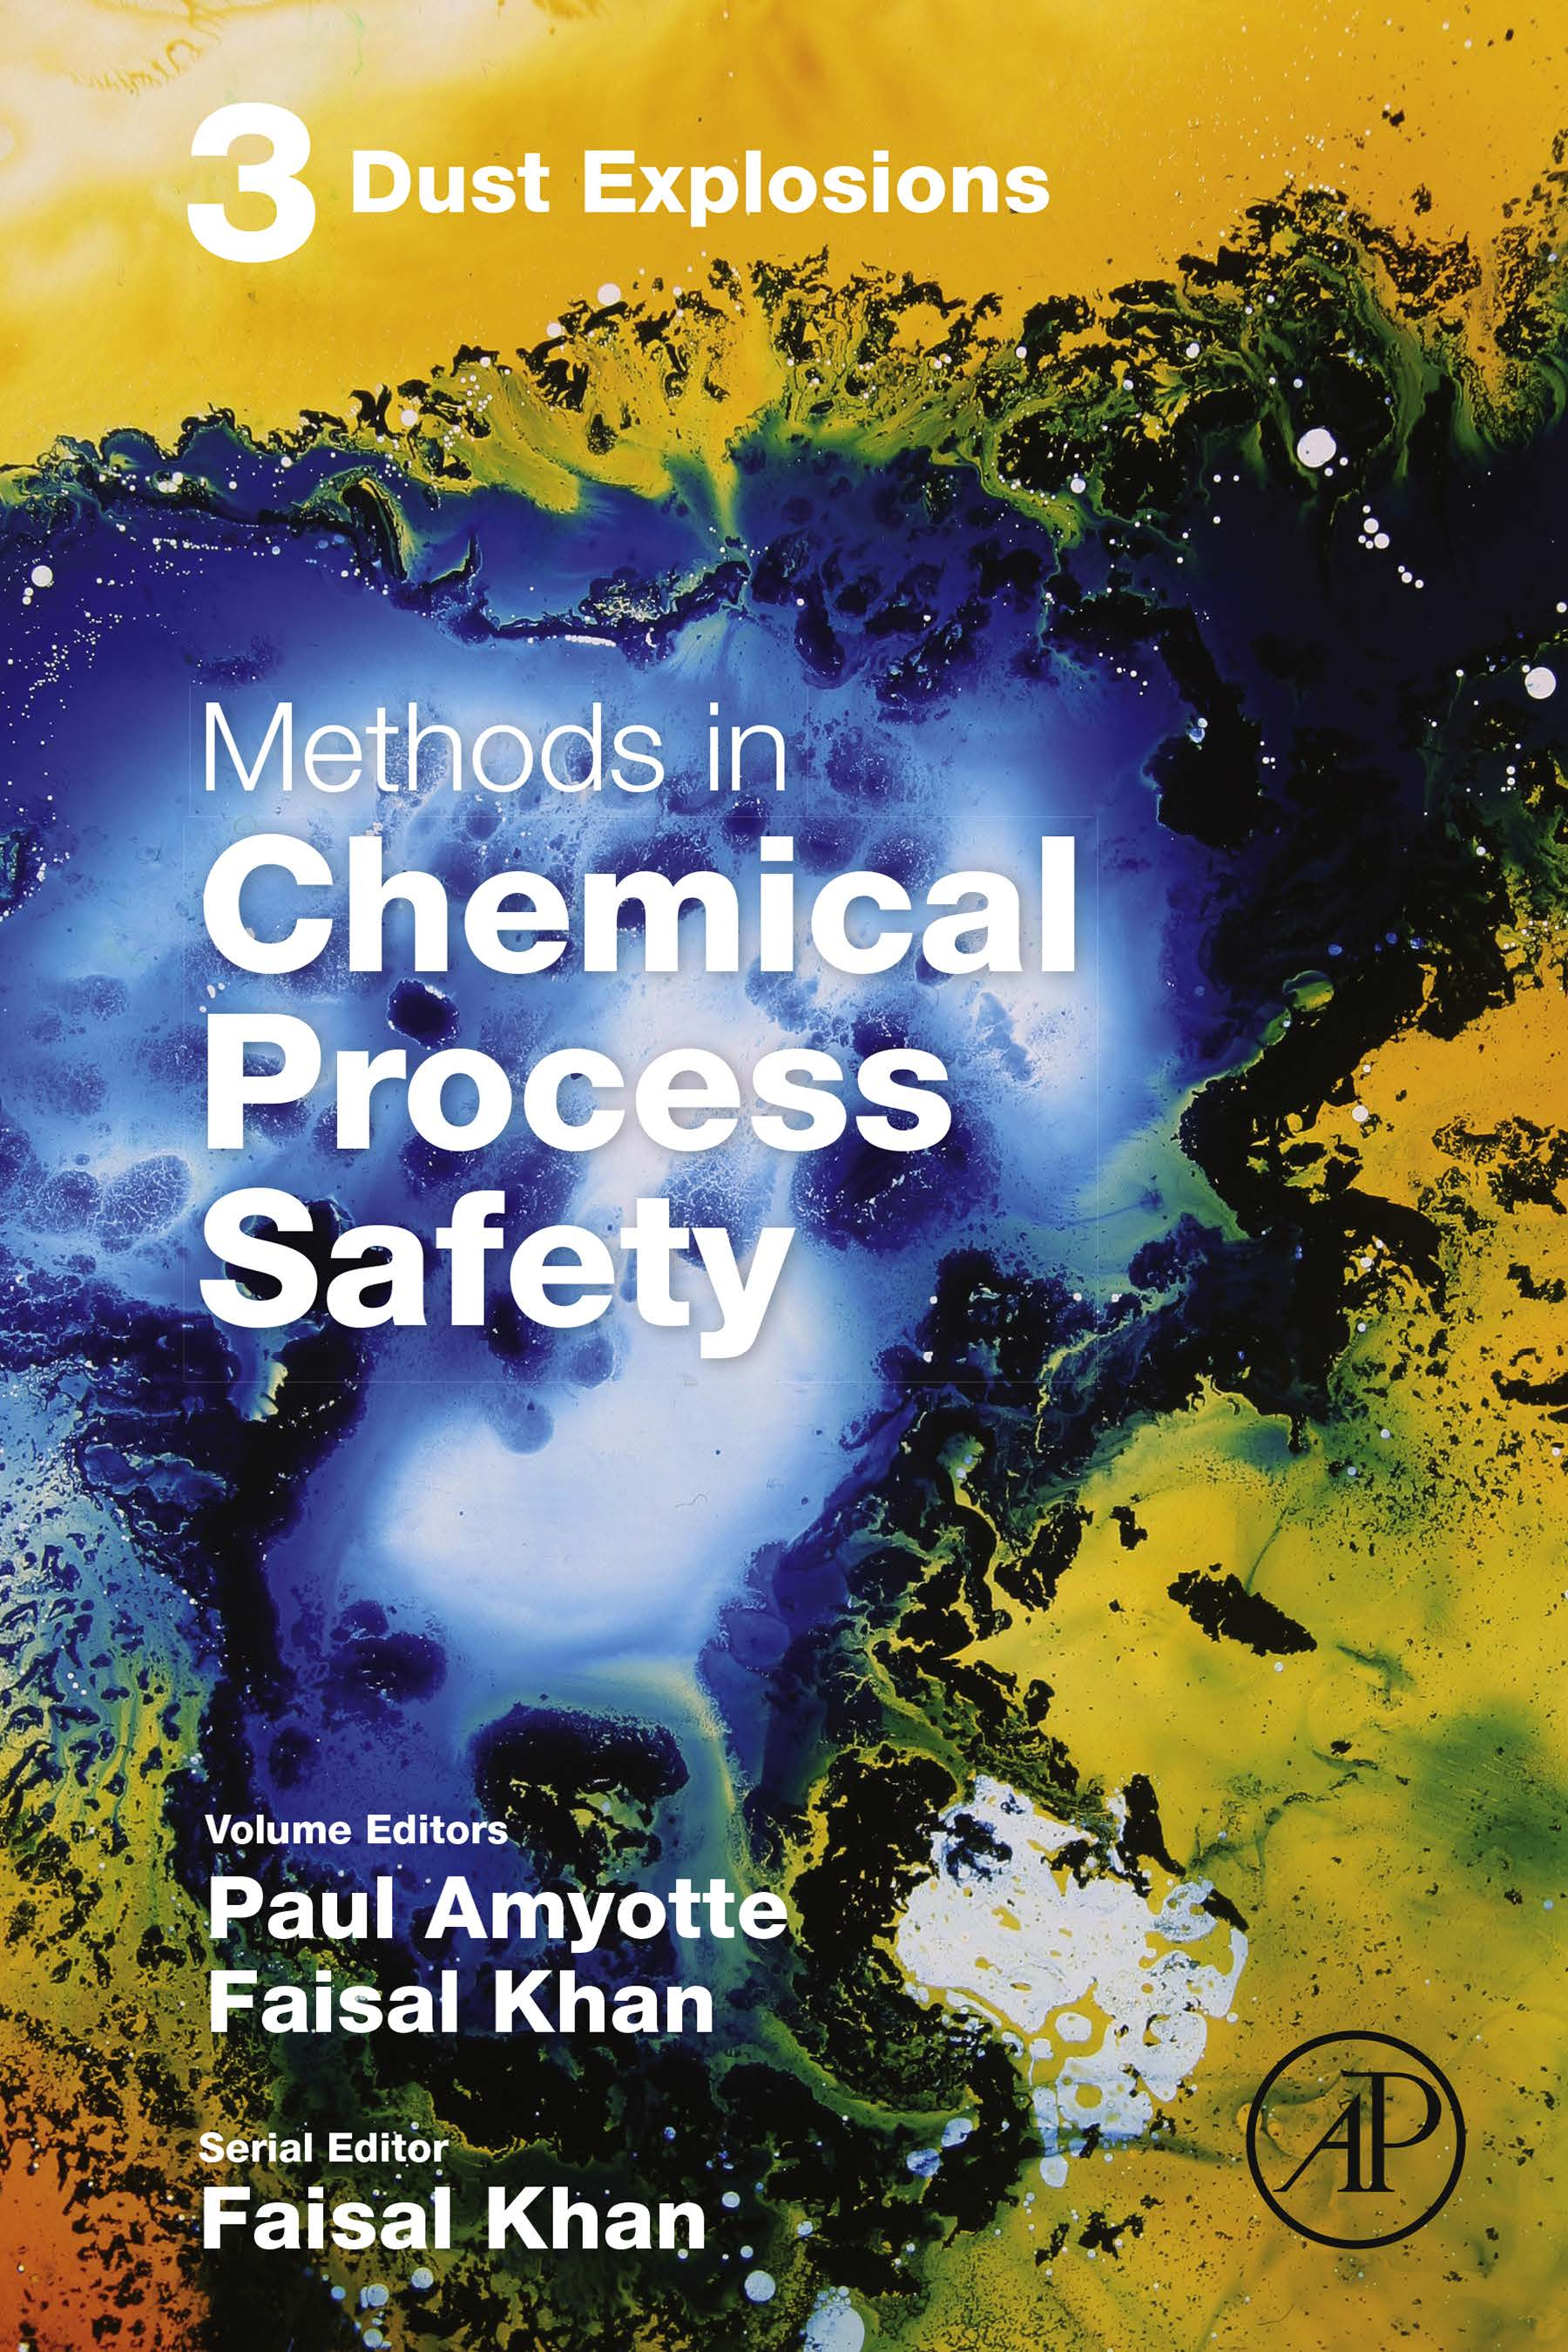 Chemical Process Safety Methods Dust Explosions